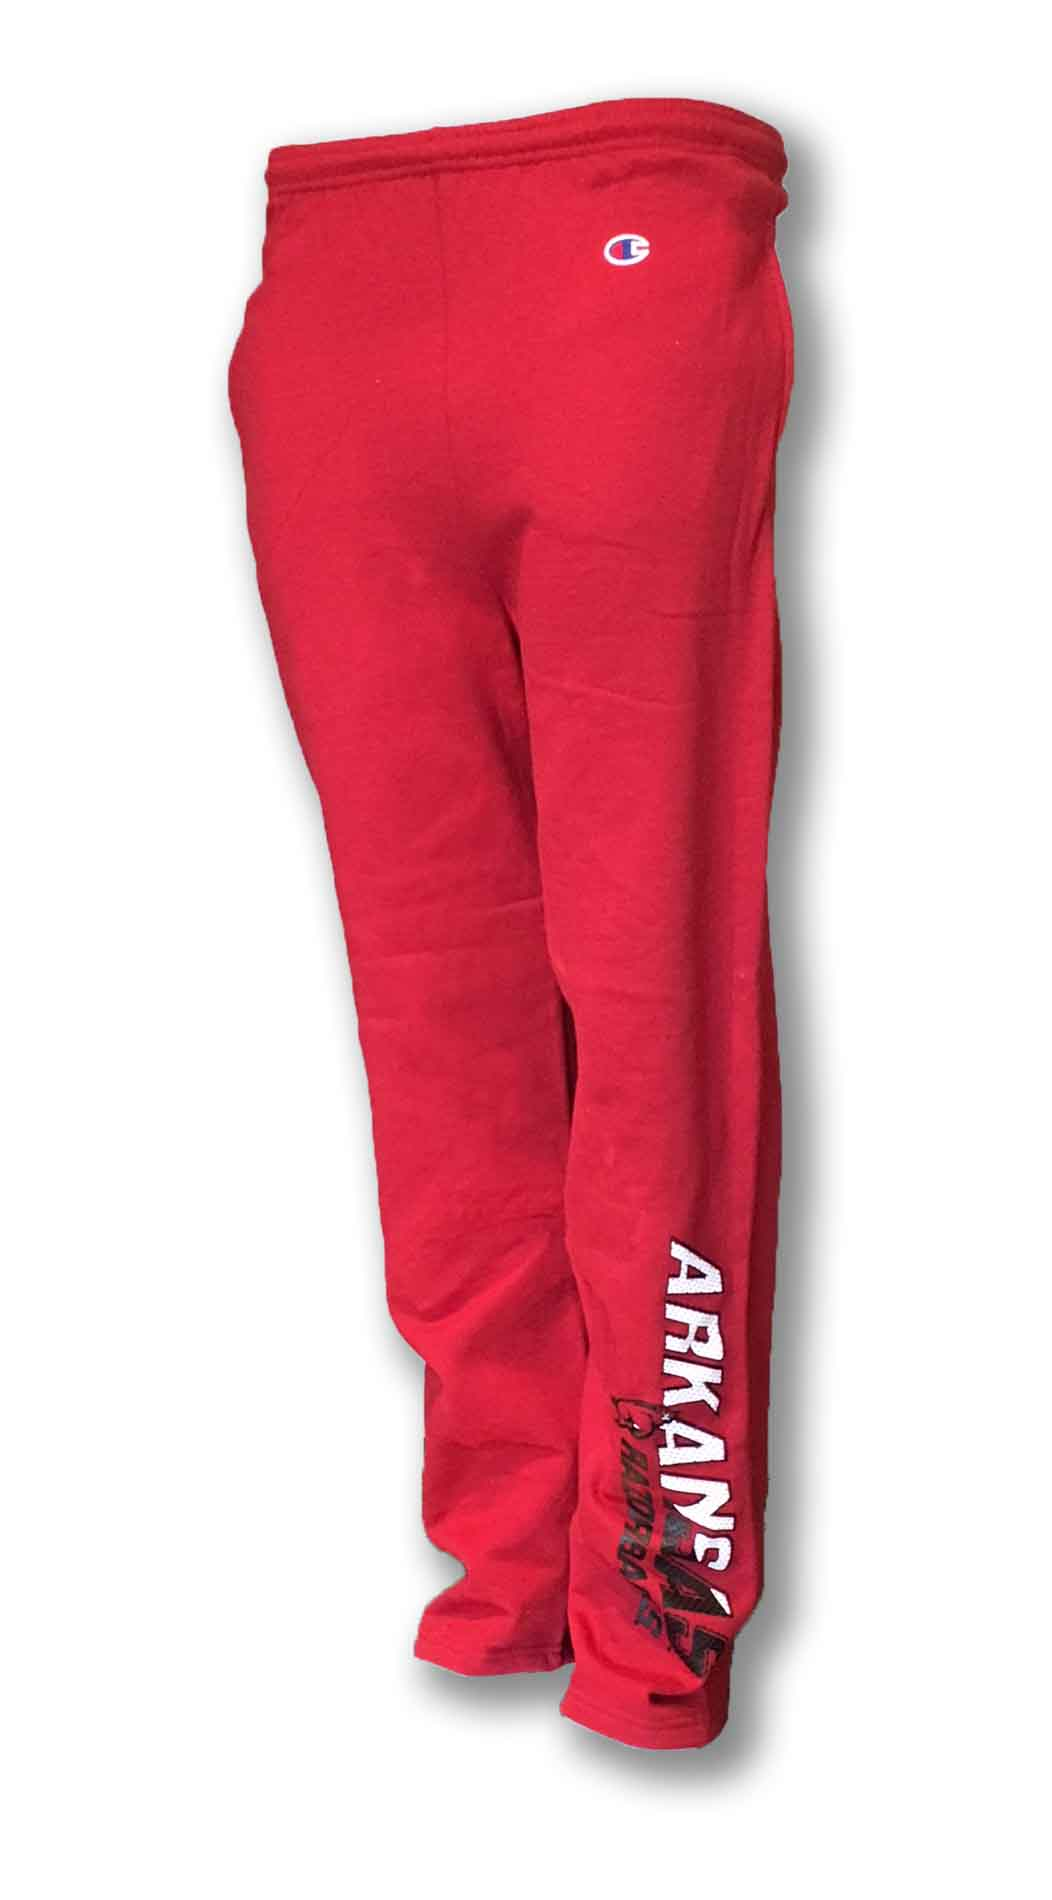 Razorback Sweatpants Loose Bottom